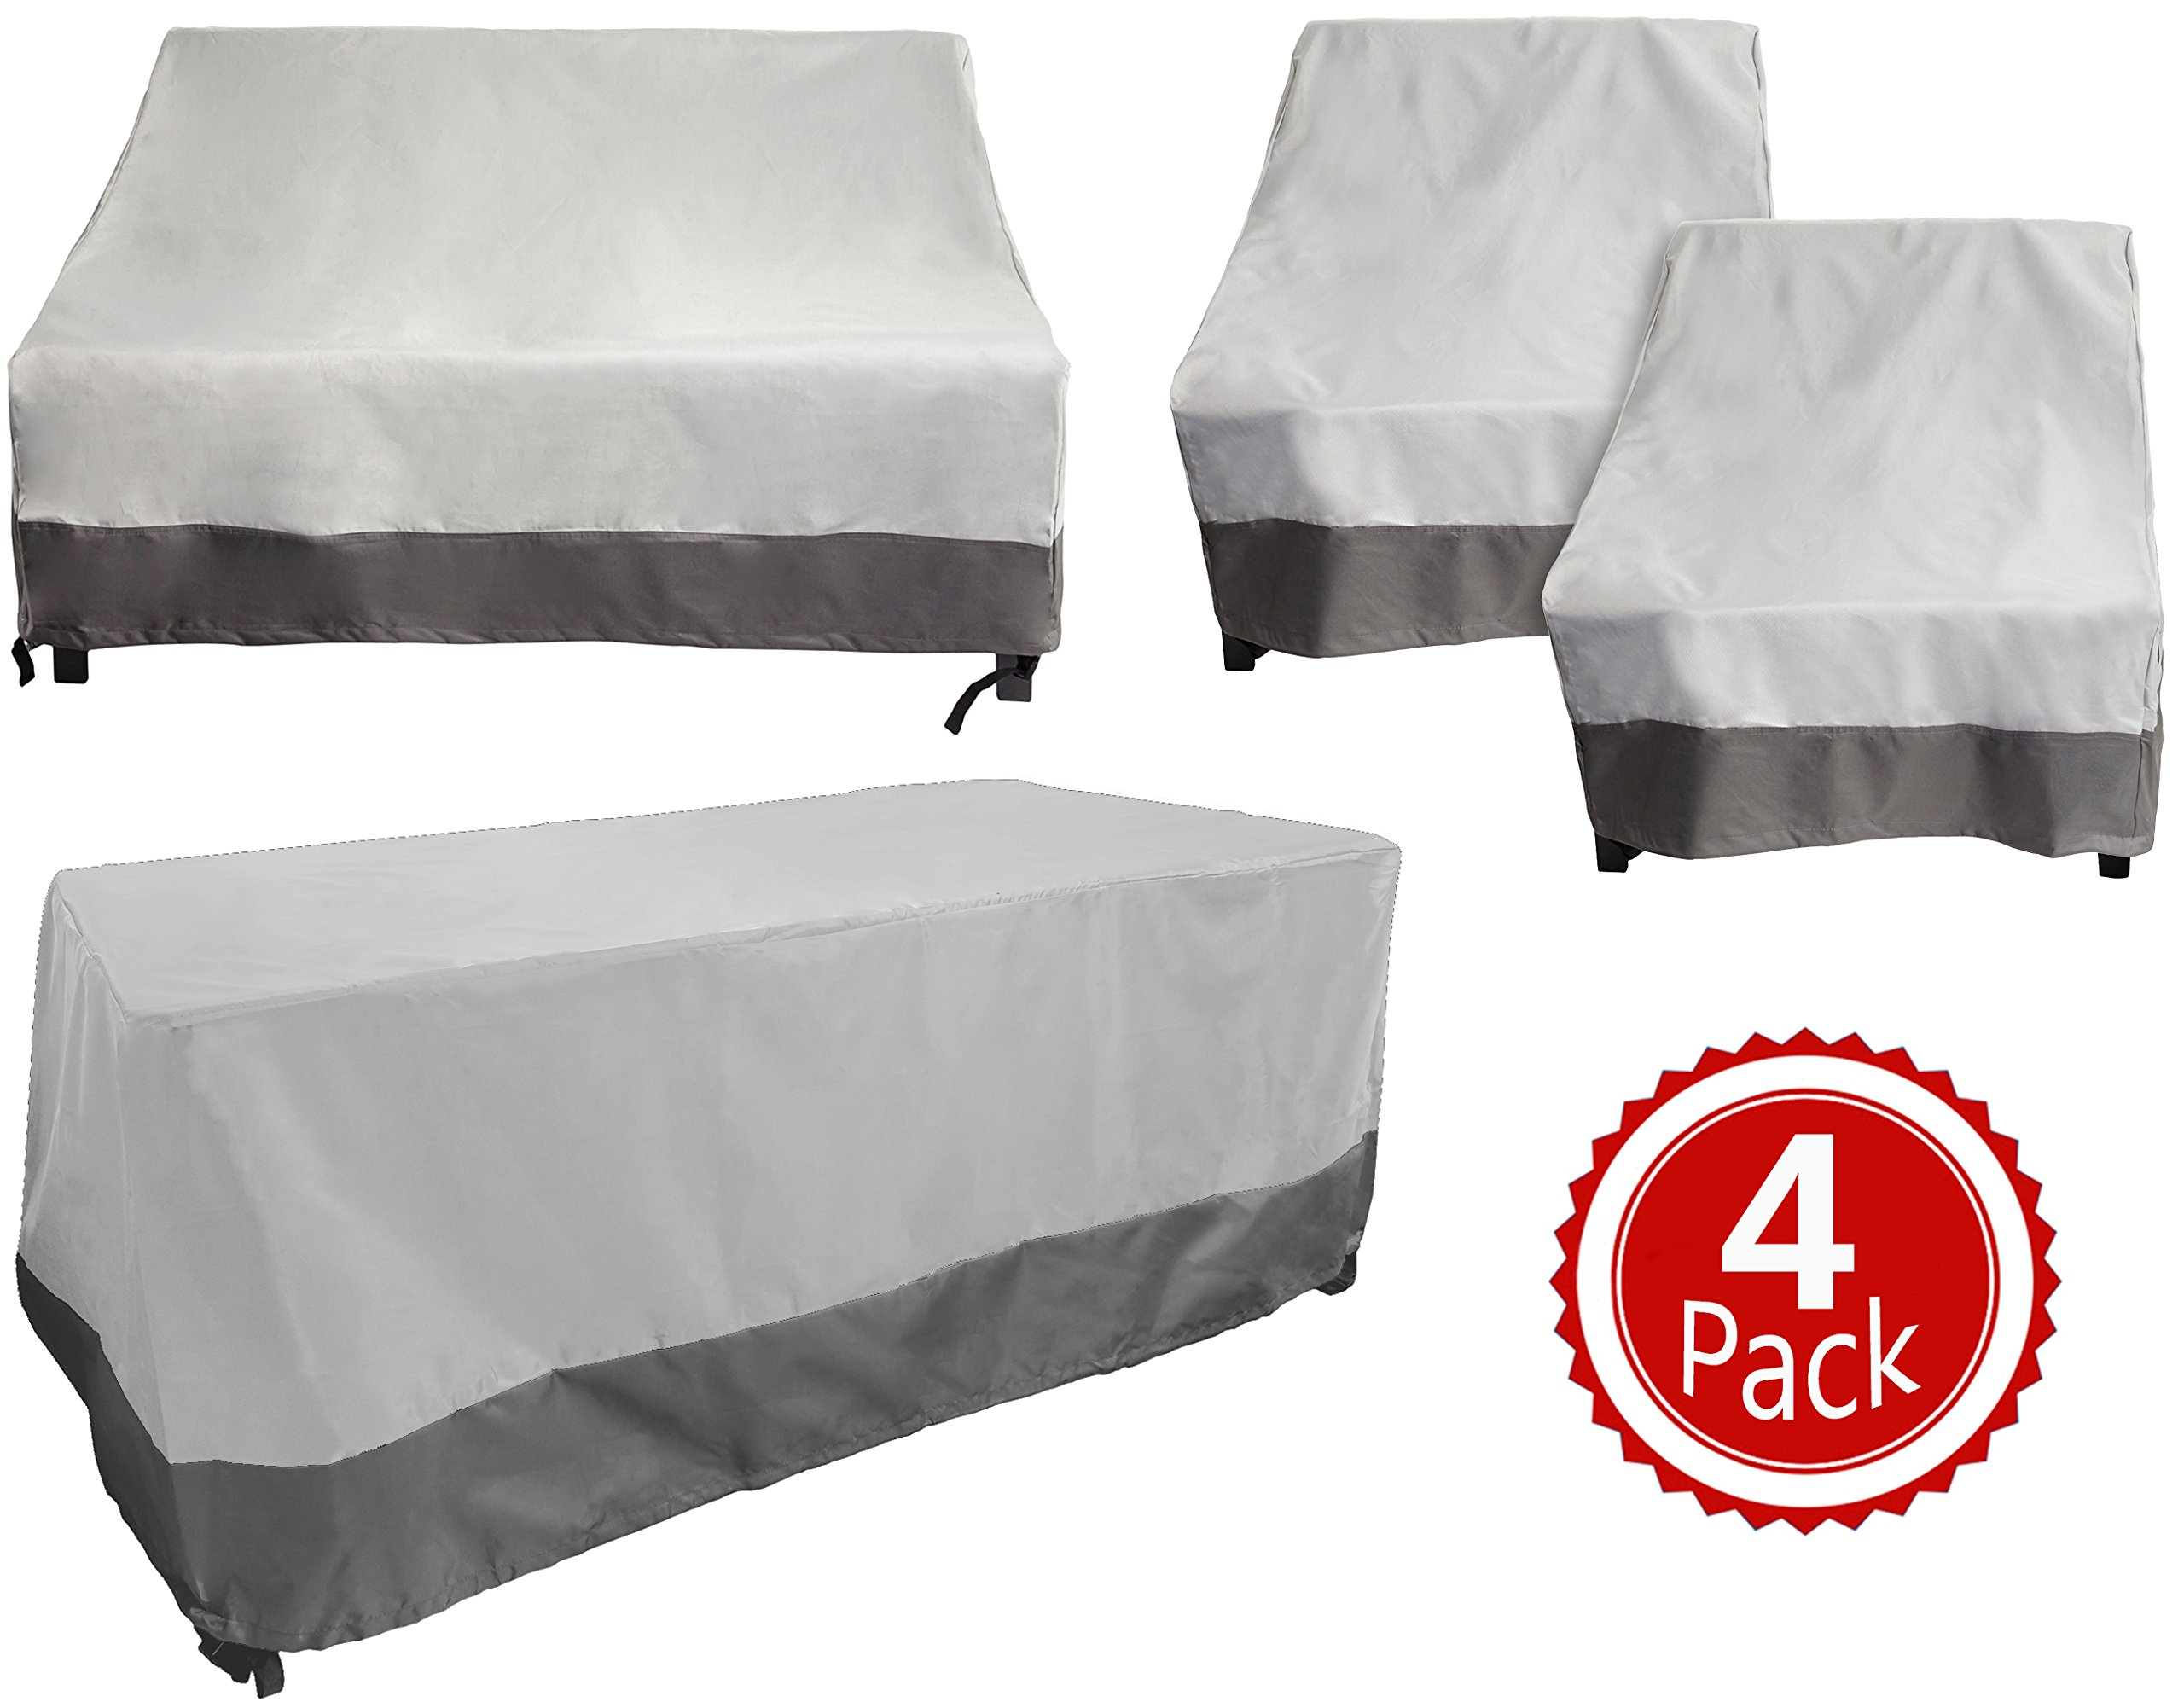 Reusable Revolution 4 Piece Outdoor Chair, Couch and Table Cover Set - Patio Furniture Weather Protection Cover Set (Grey)